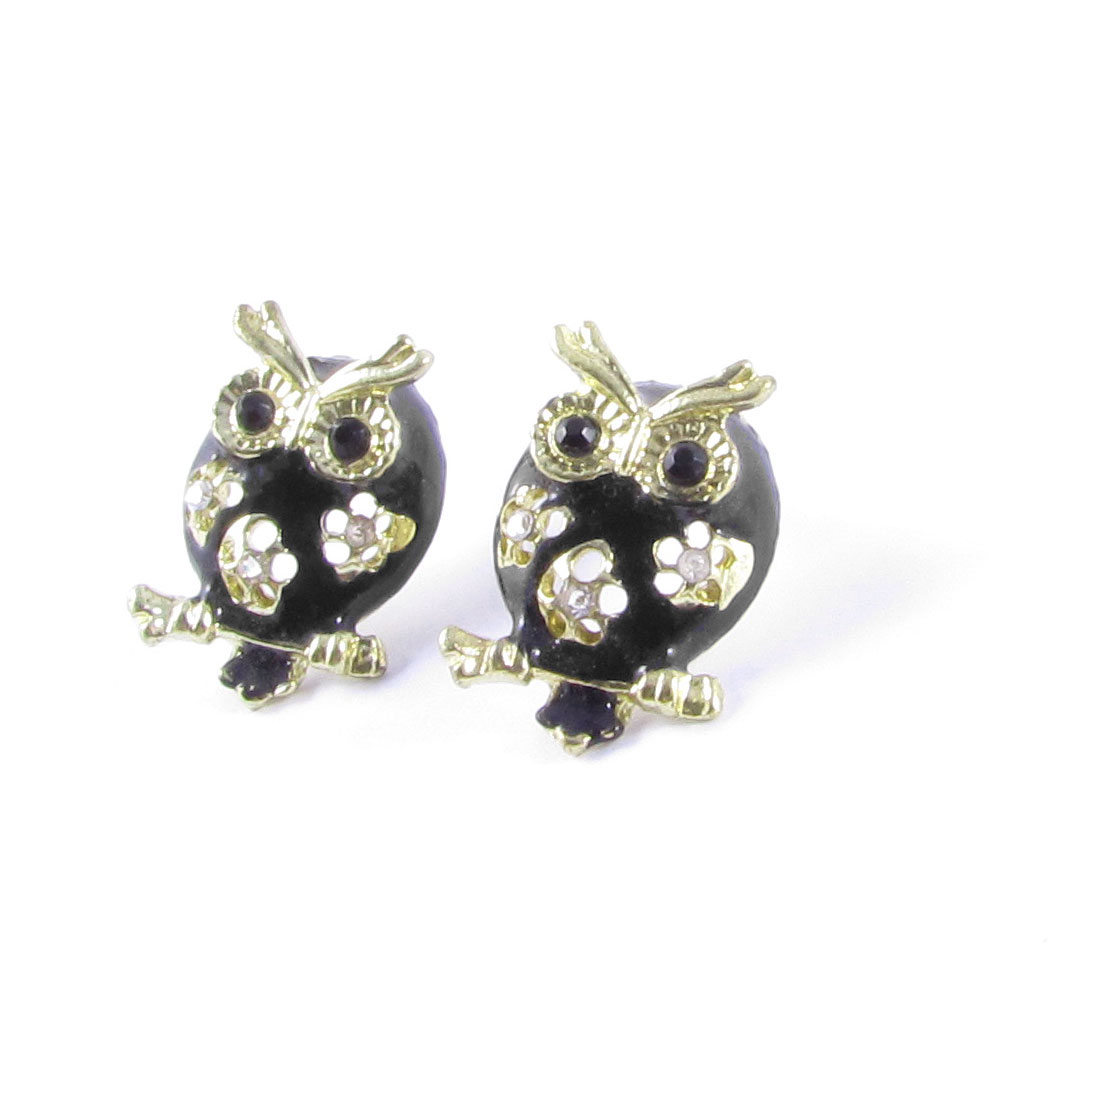 Pair Rhinestones Inlaid Black Owl Shaped Decor Stud Earrings Gold Tone for Lady